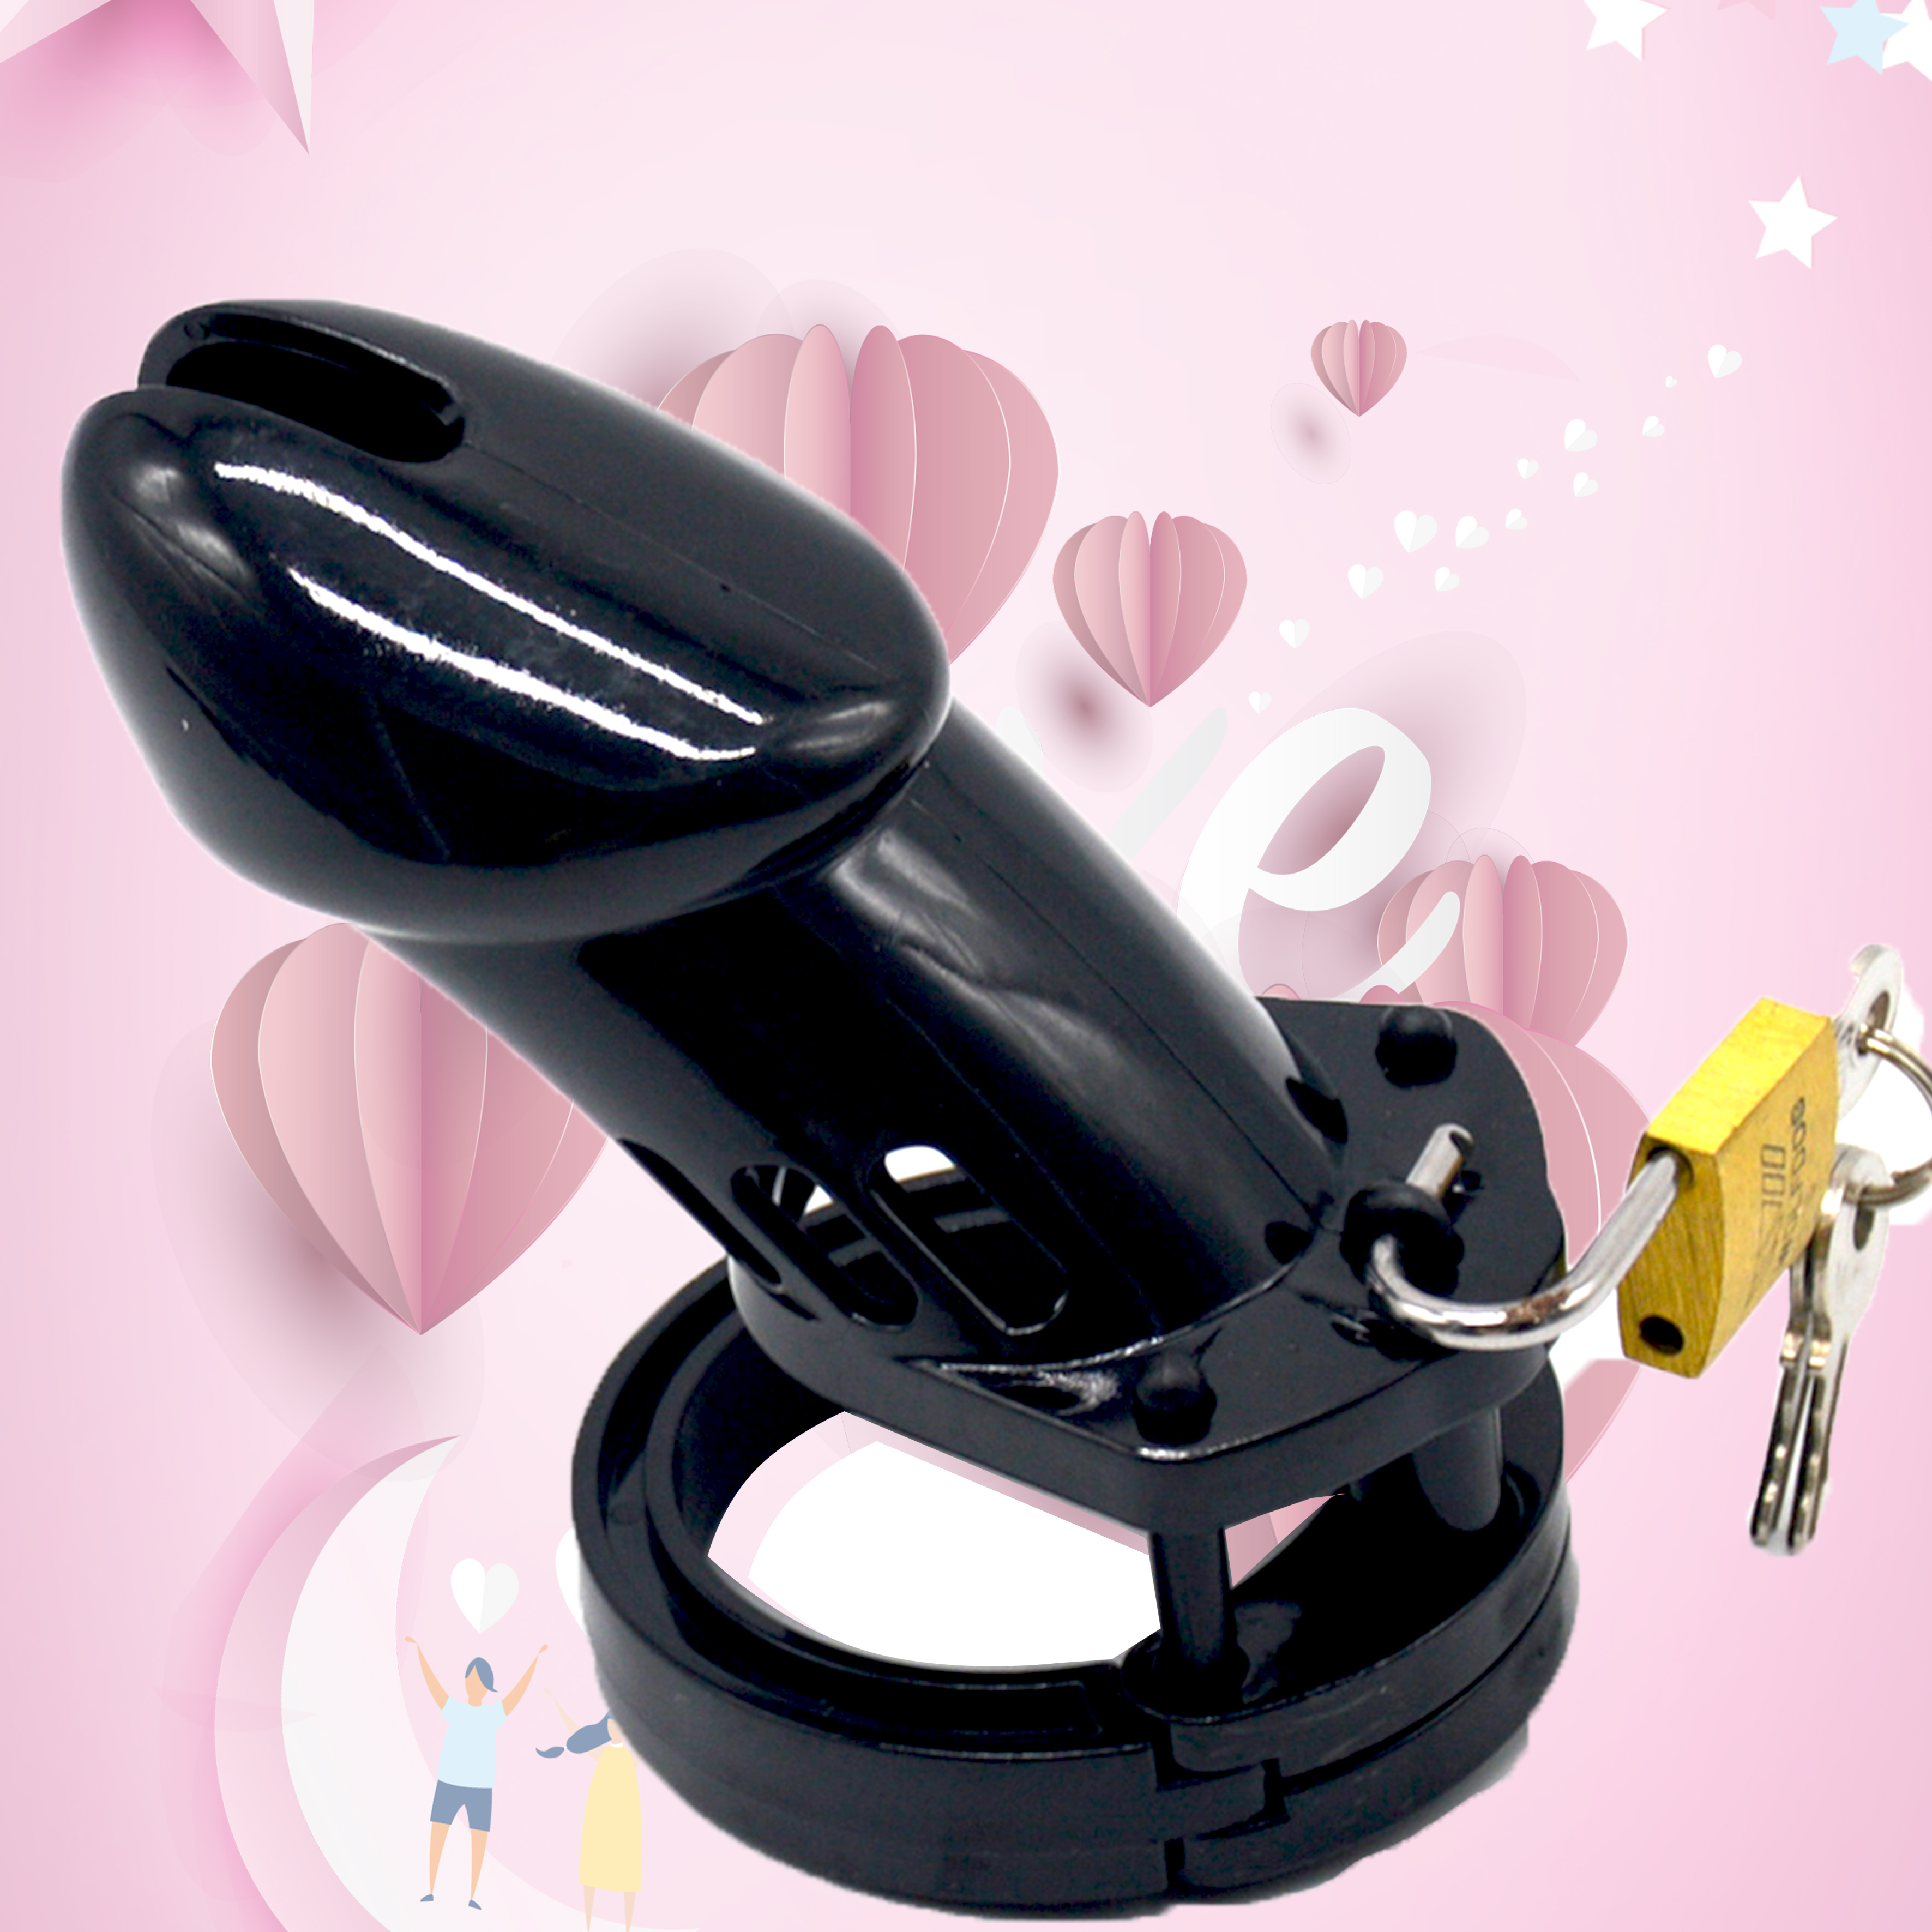 Chaste Bird FactoryCB6000 Price Electro Shock Male Chastity Device Cock Cage With Adjustable Cuff Ring Adult